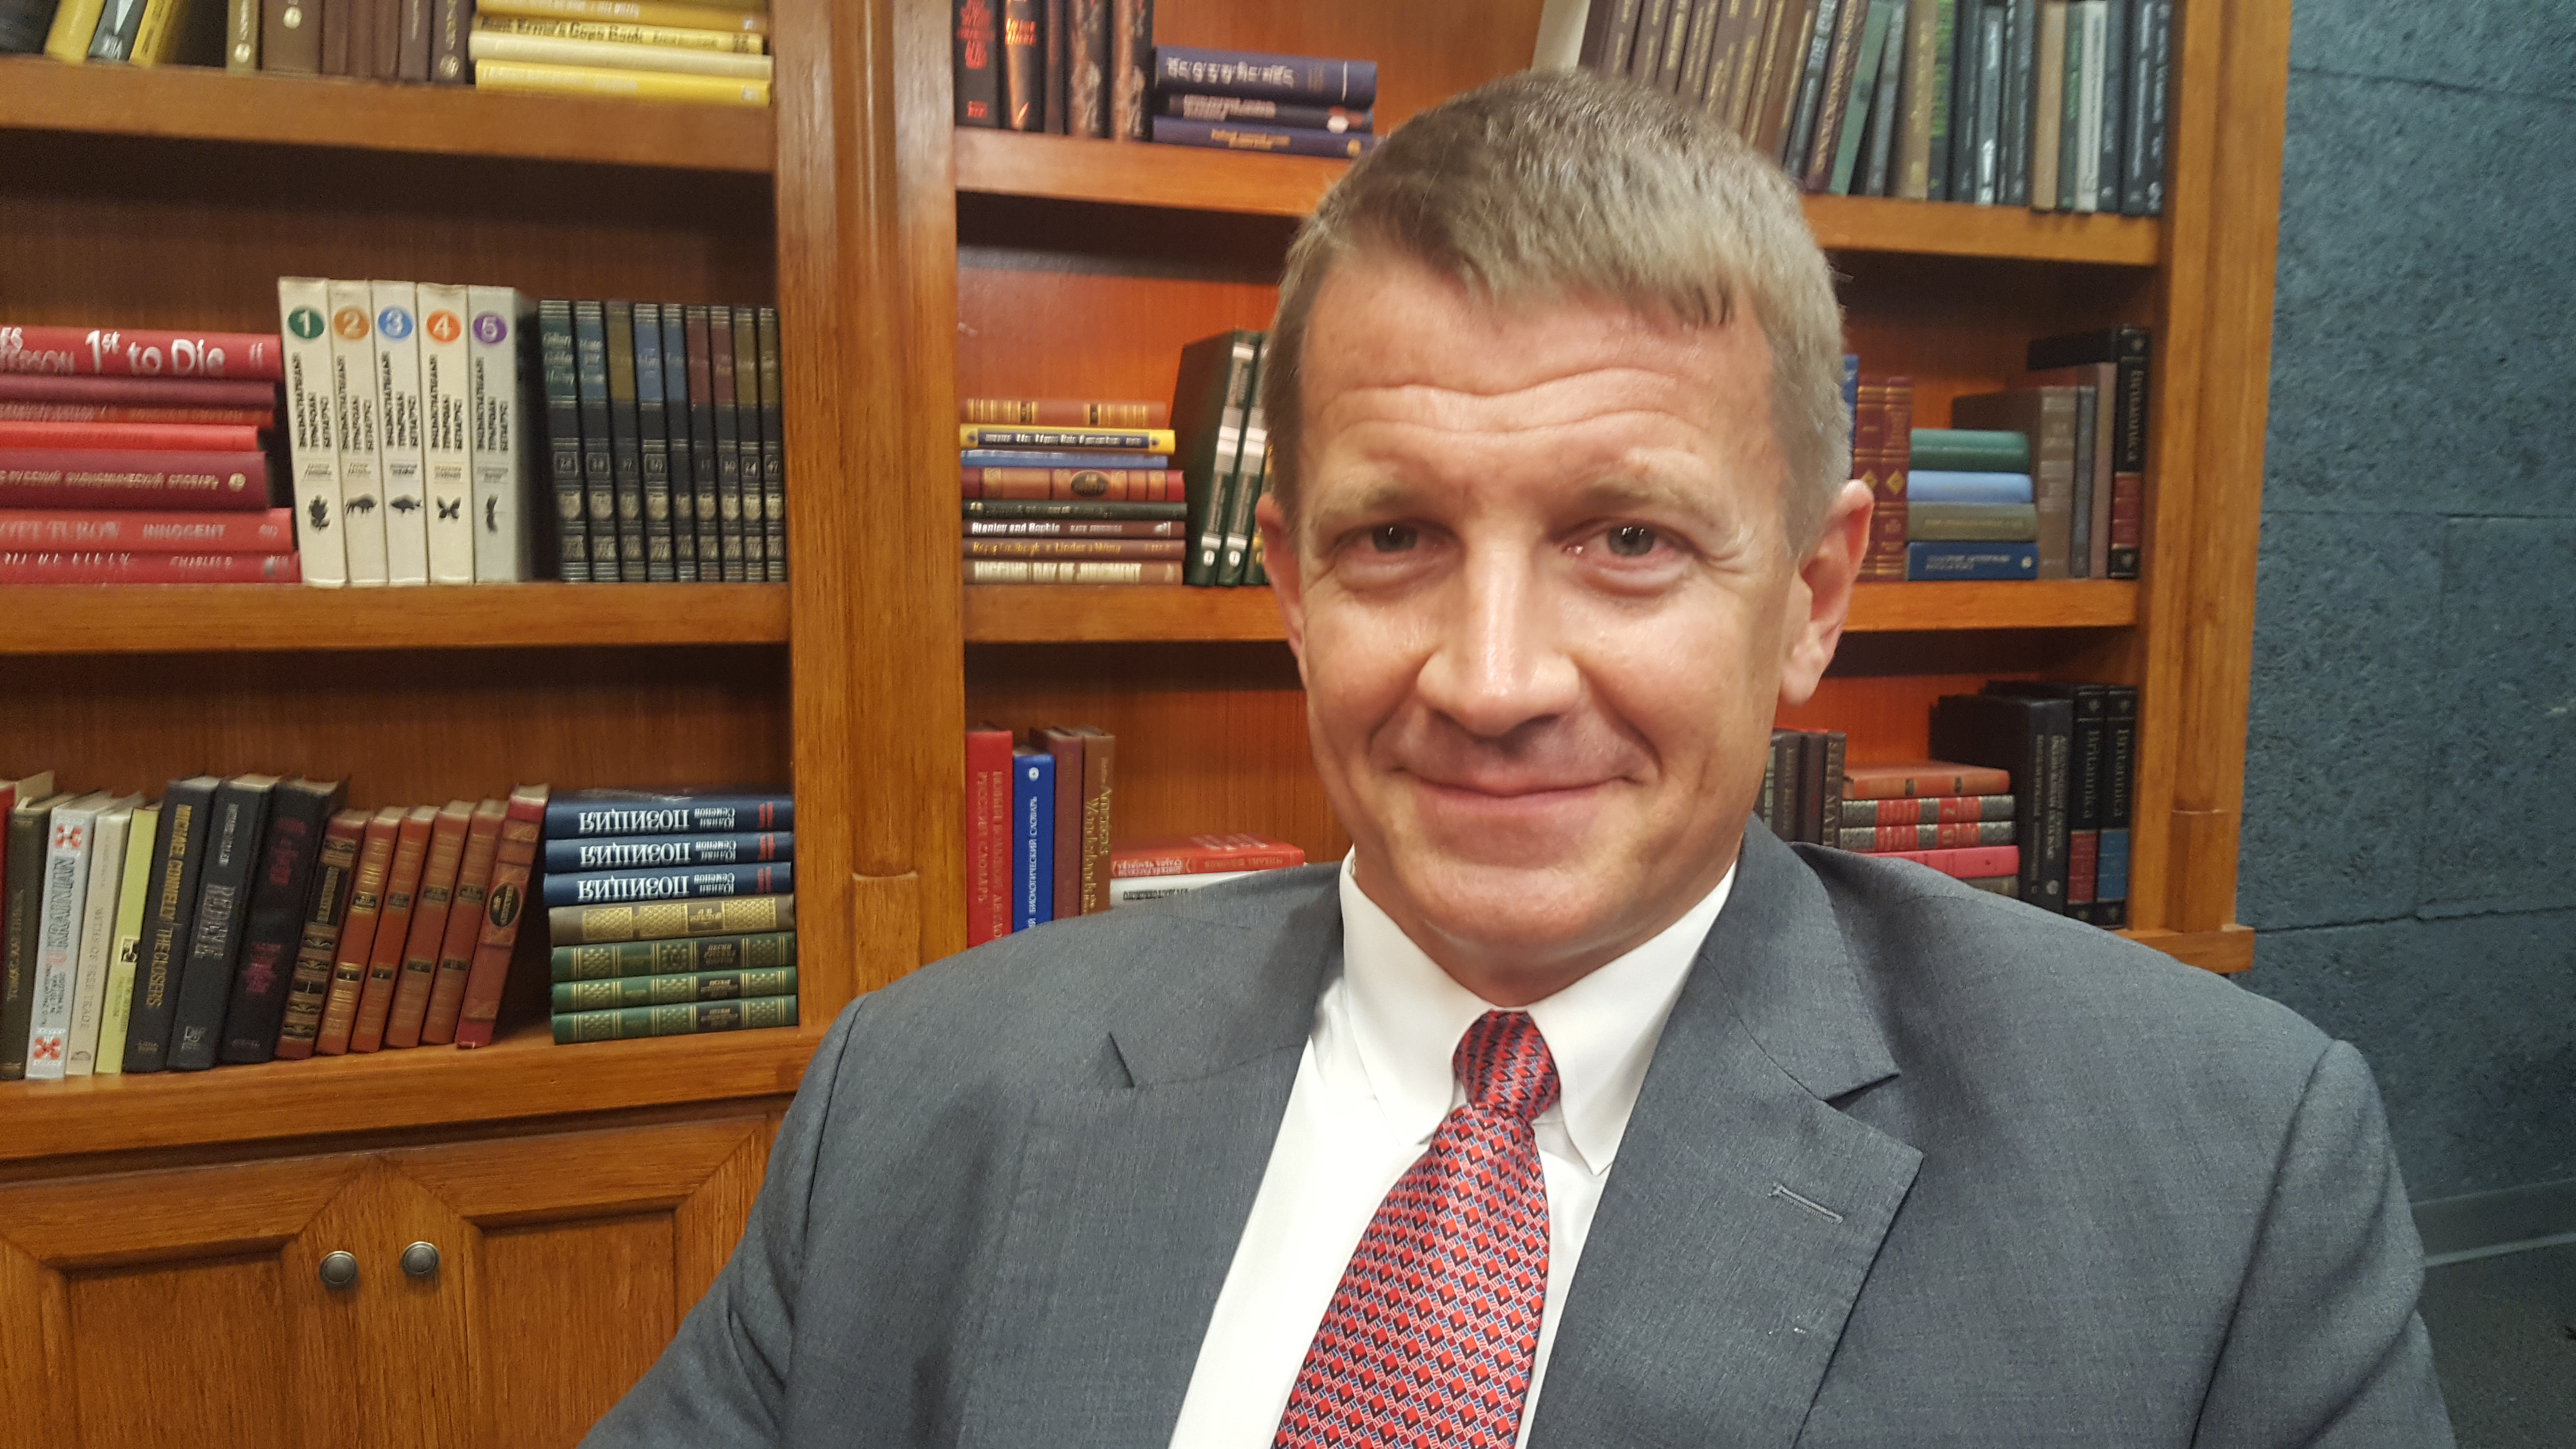 Blackwater founder Erik Prince spoke with VOA about his proposal to privatize a large portion of the U.S. war in Afghanistan. The controversial proposal is being met with growing opposition in Kabul and Washington.